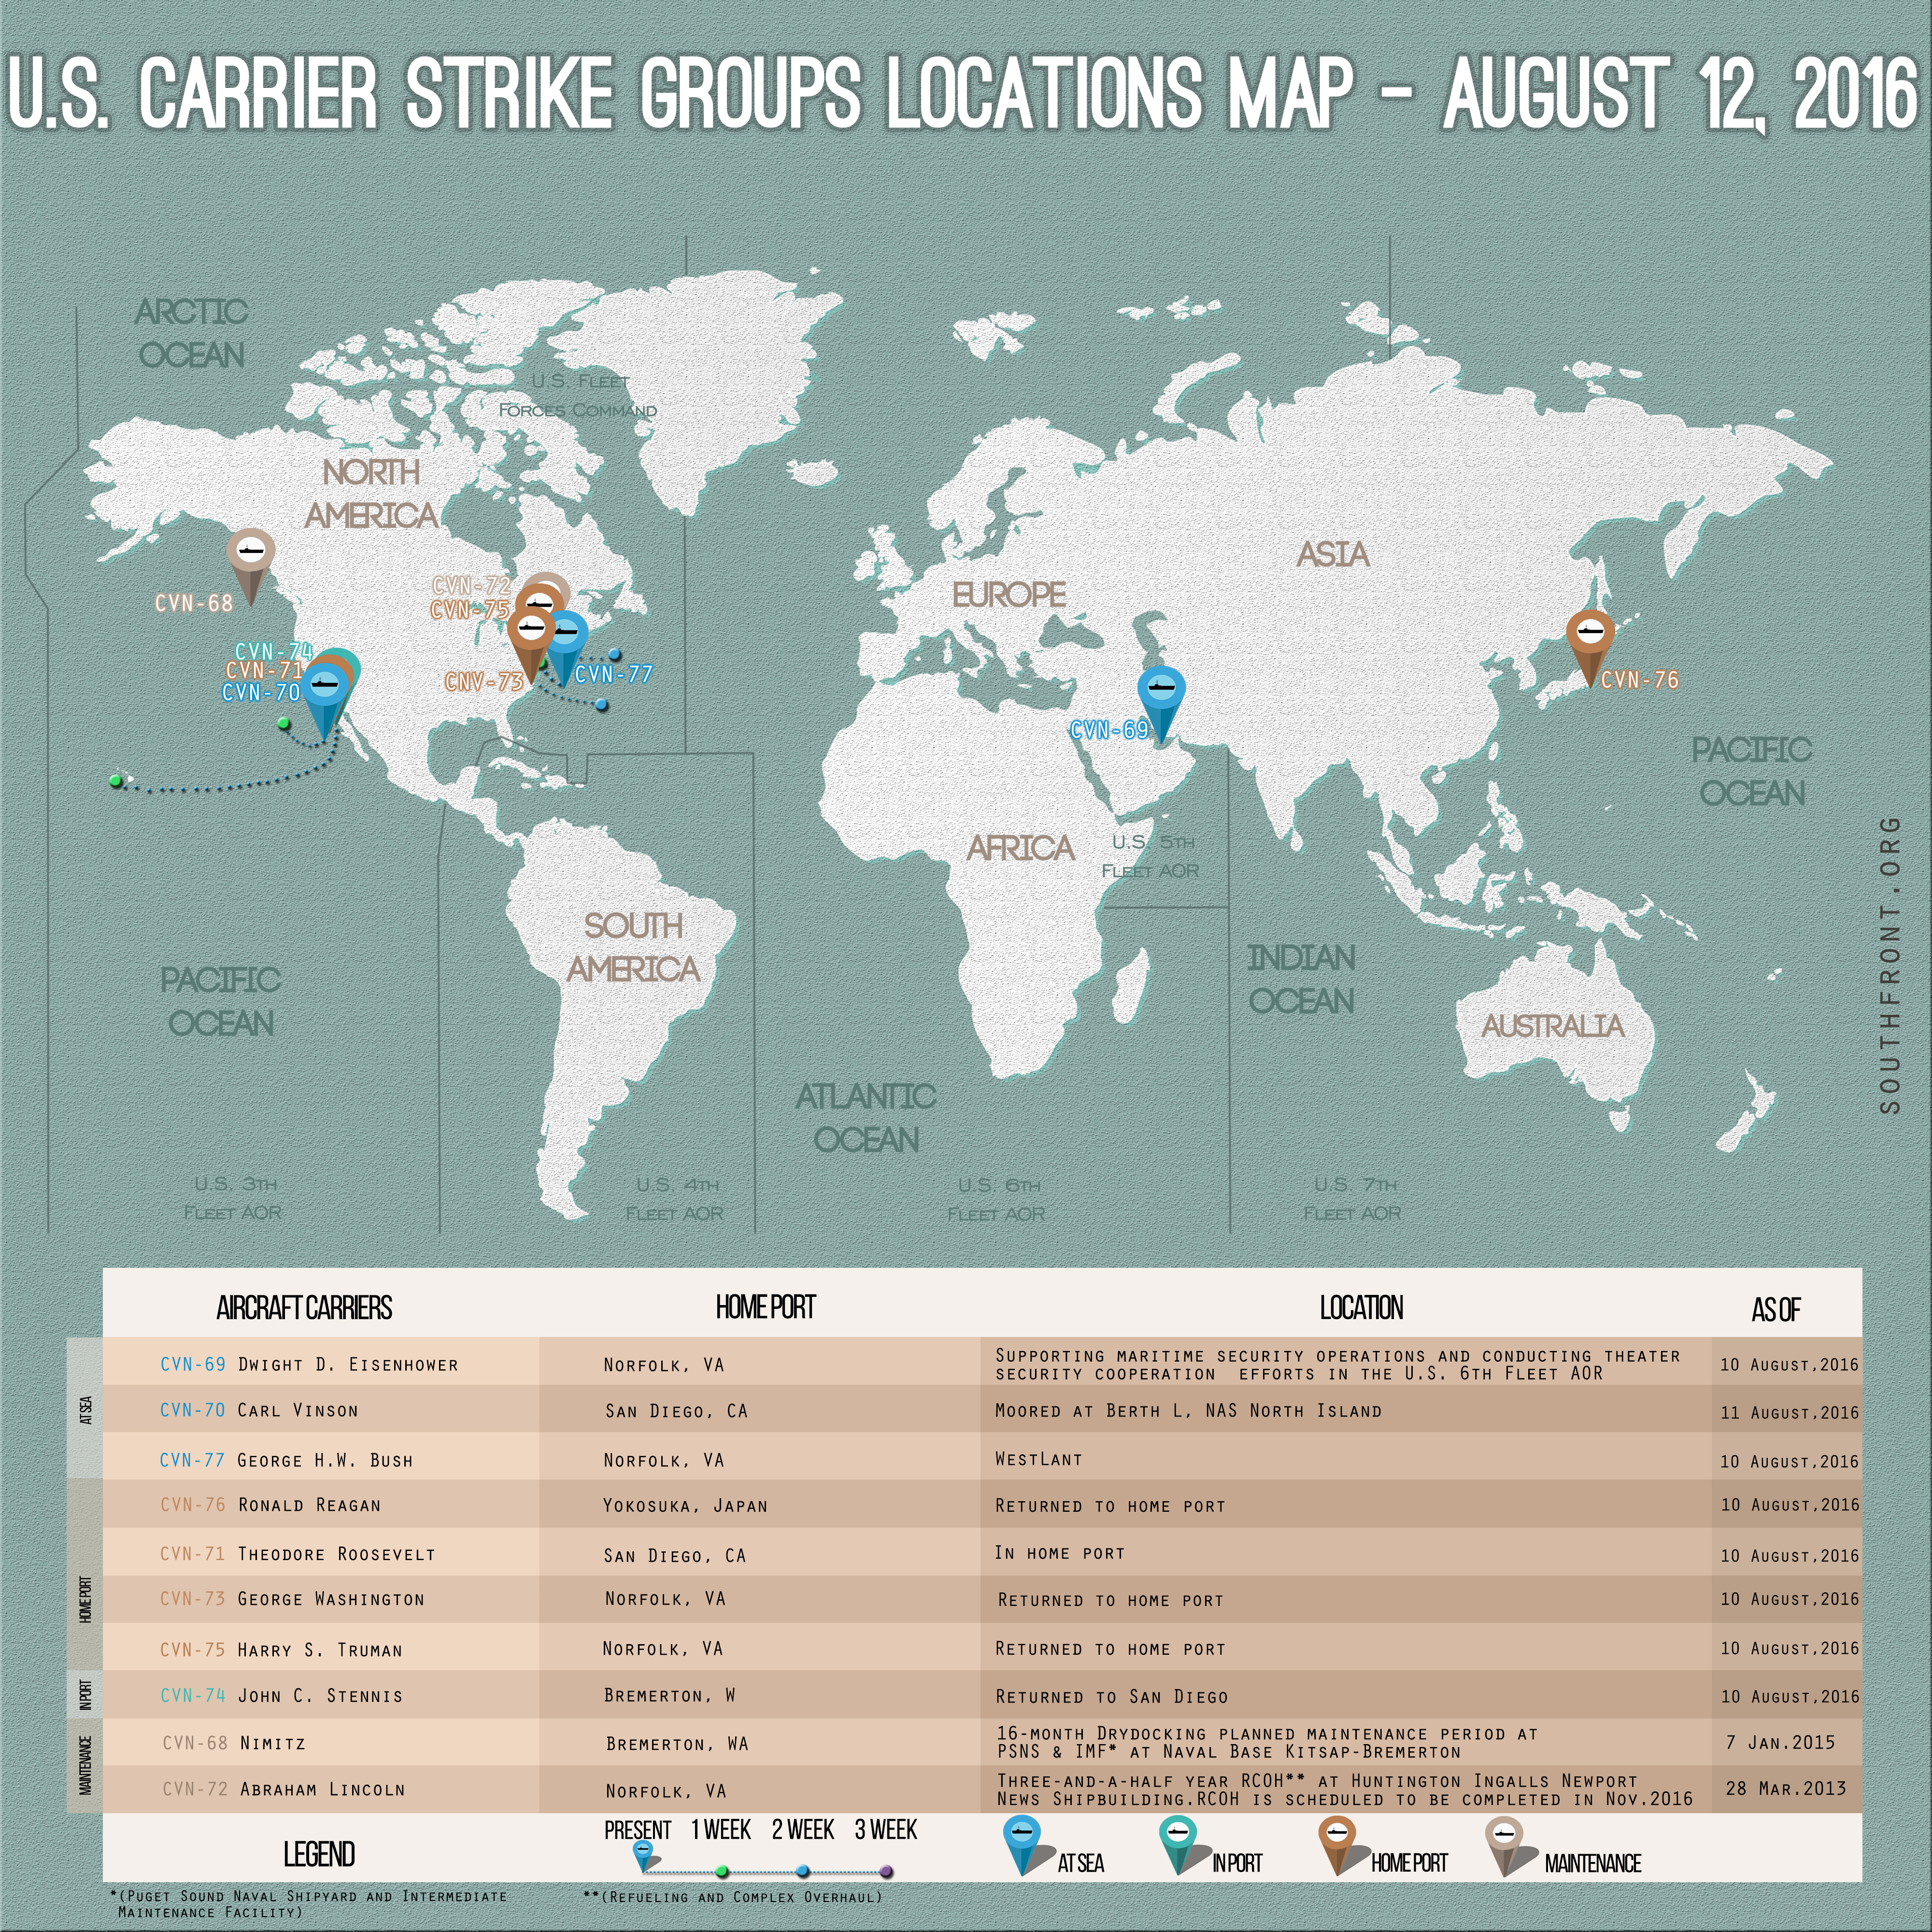 US Carrier Strike Groups Locations Map – August 12, 2016